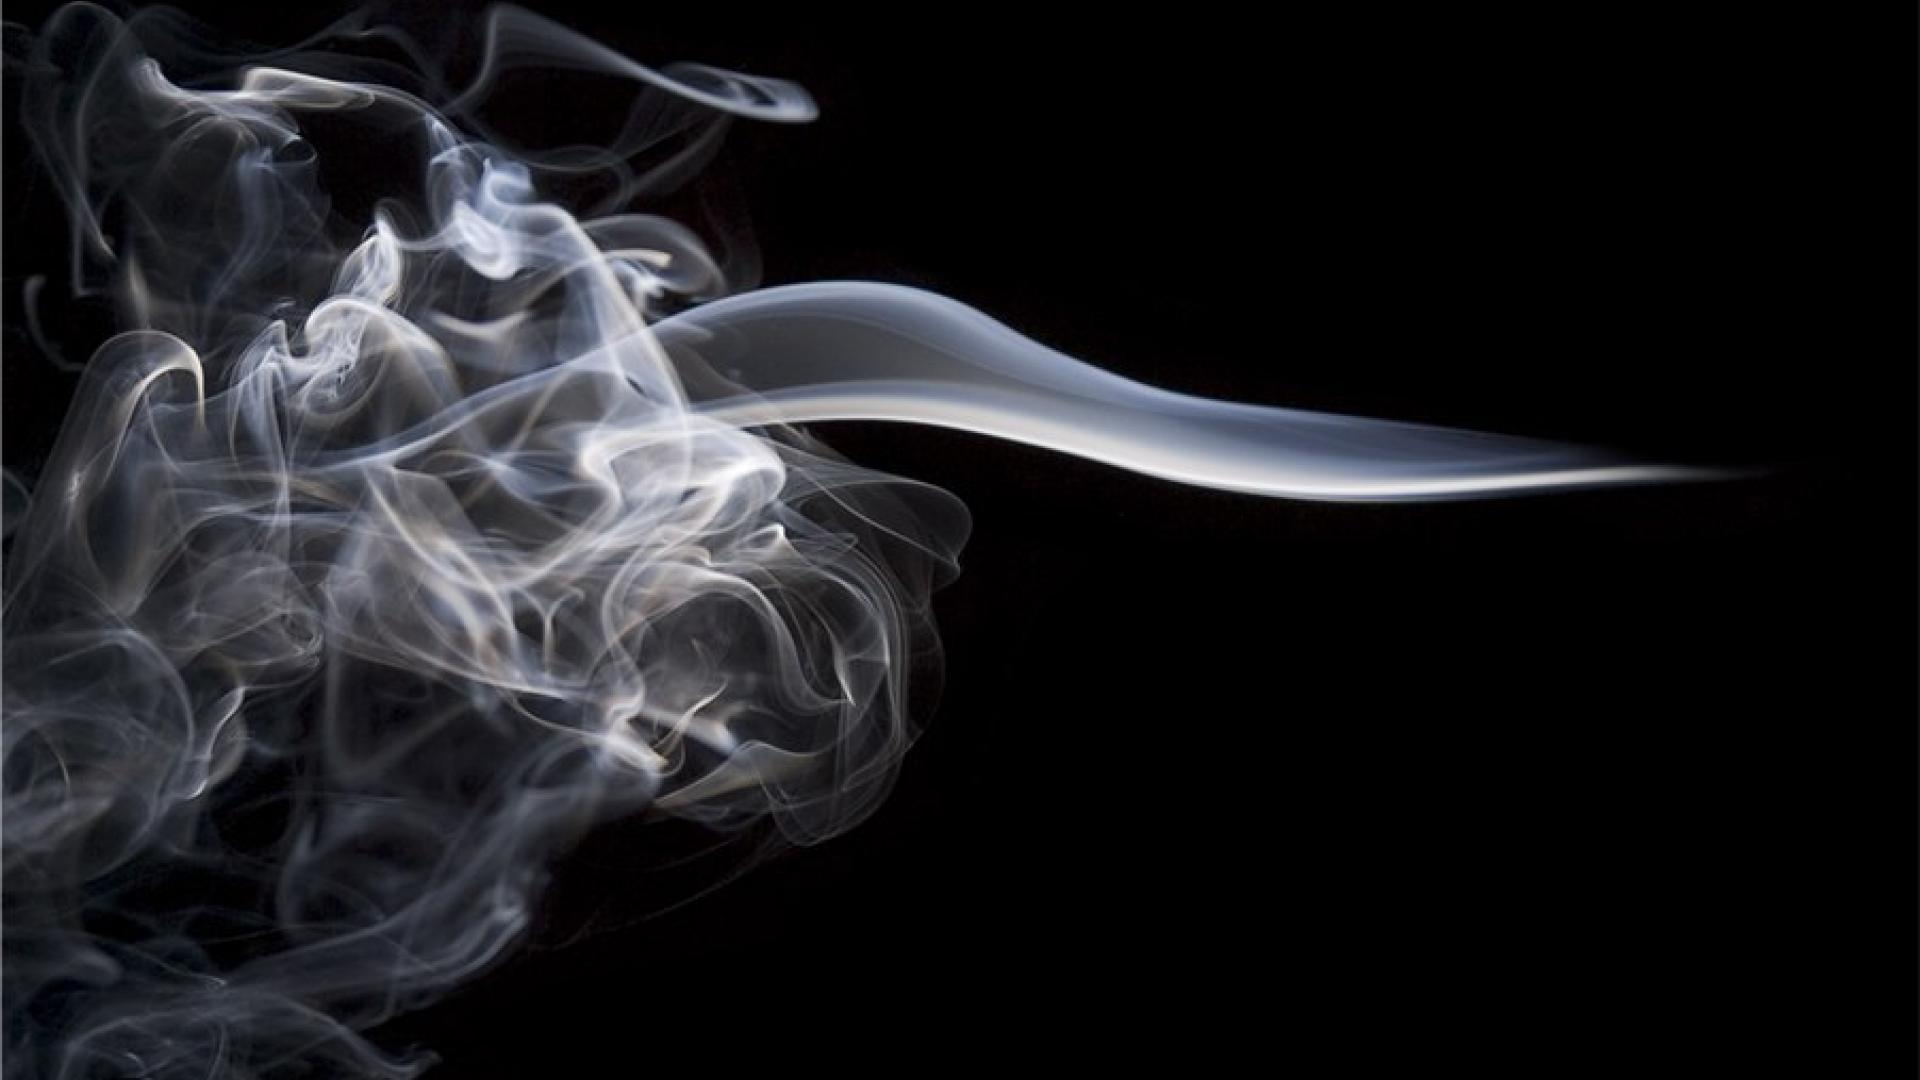 HD Smoke Wallpaper 1920x1080